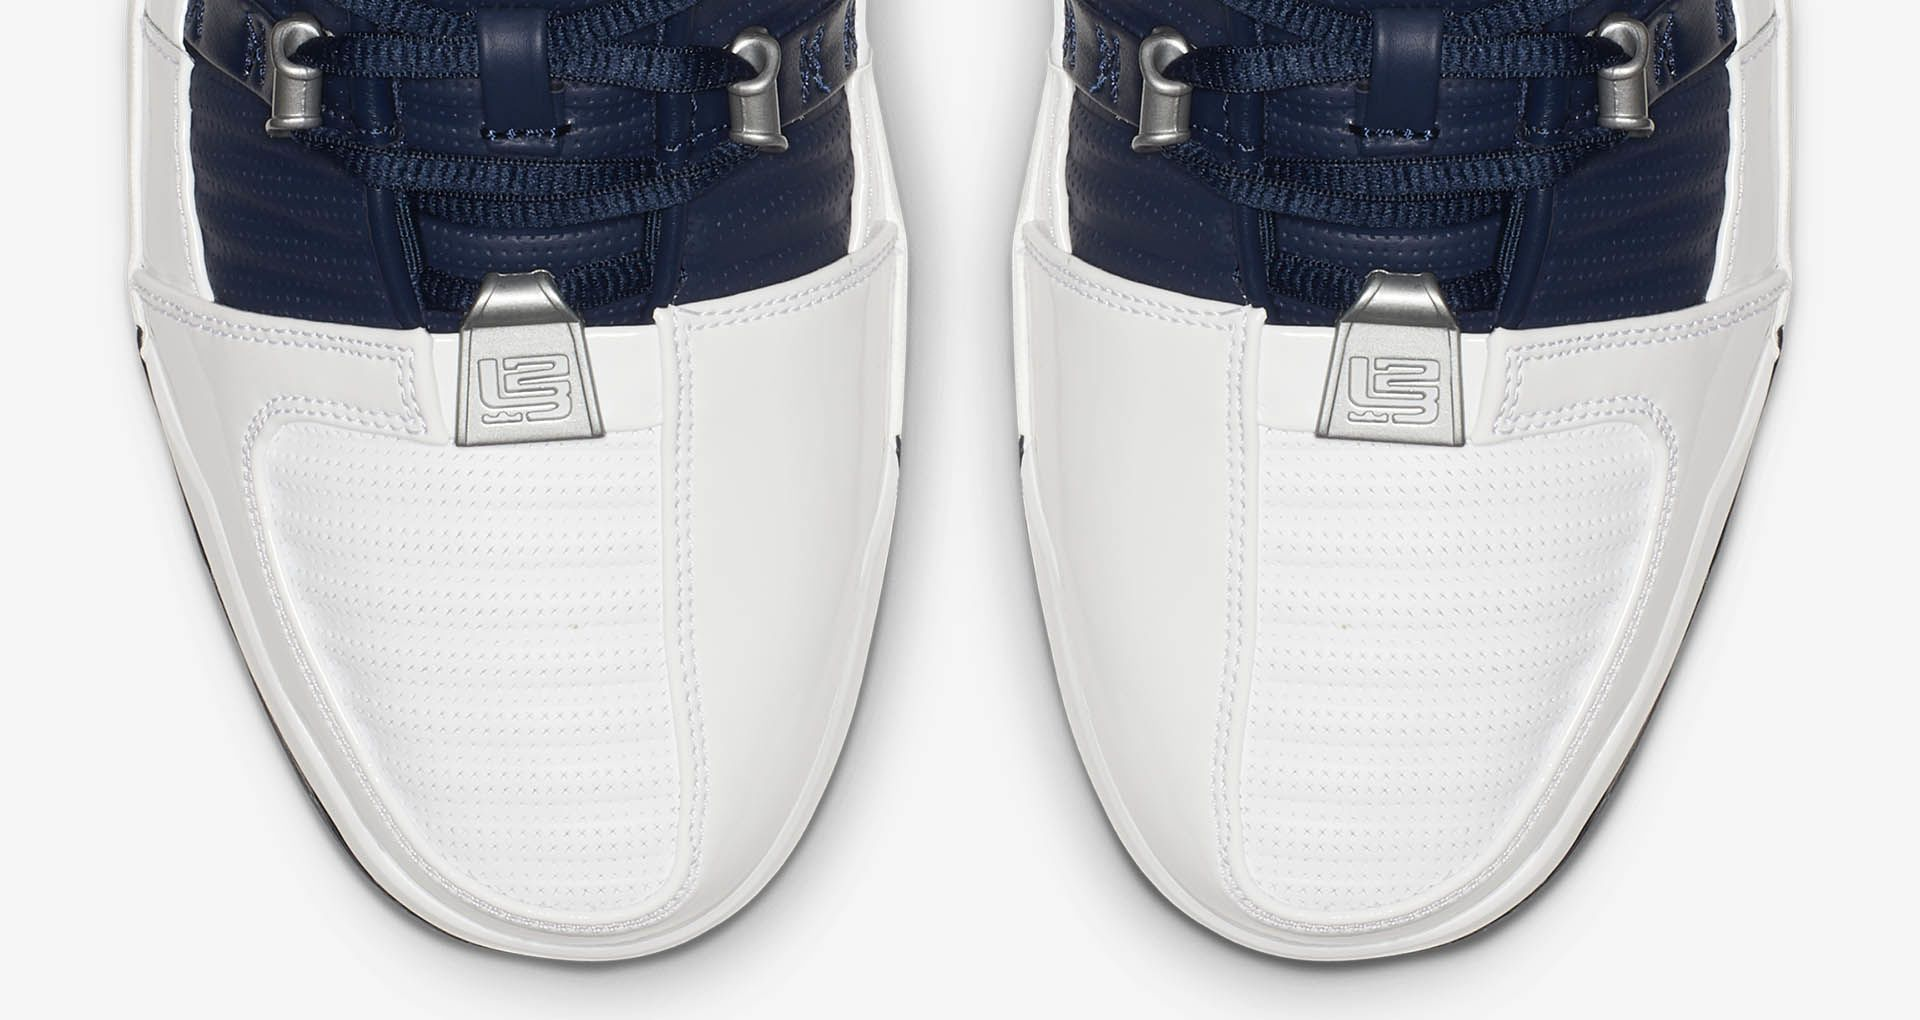 d1f9d352adf42 ... the Zoom LeBron III now arrives in the original midnight navy and metallic  silver-accented colorway. Sold Out